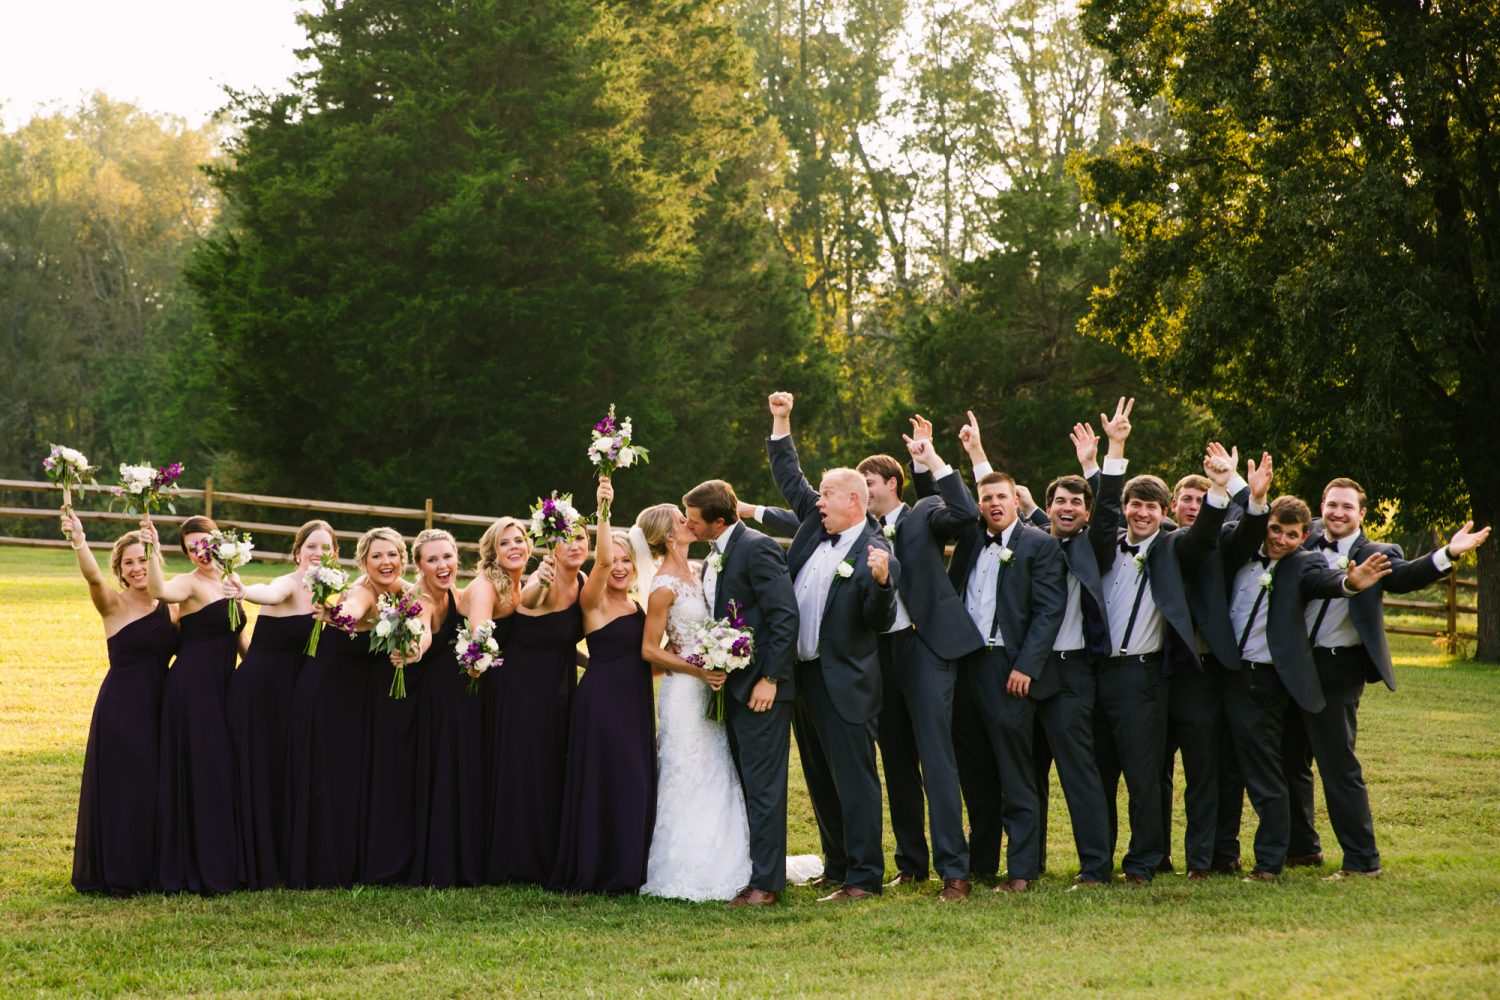 Waynesville, NC Wedding Photography | Bridal Party Celebrates a Kiss